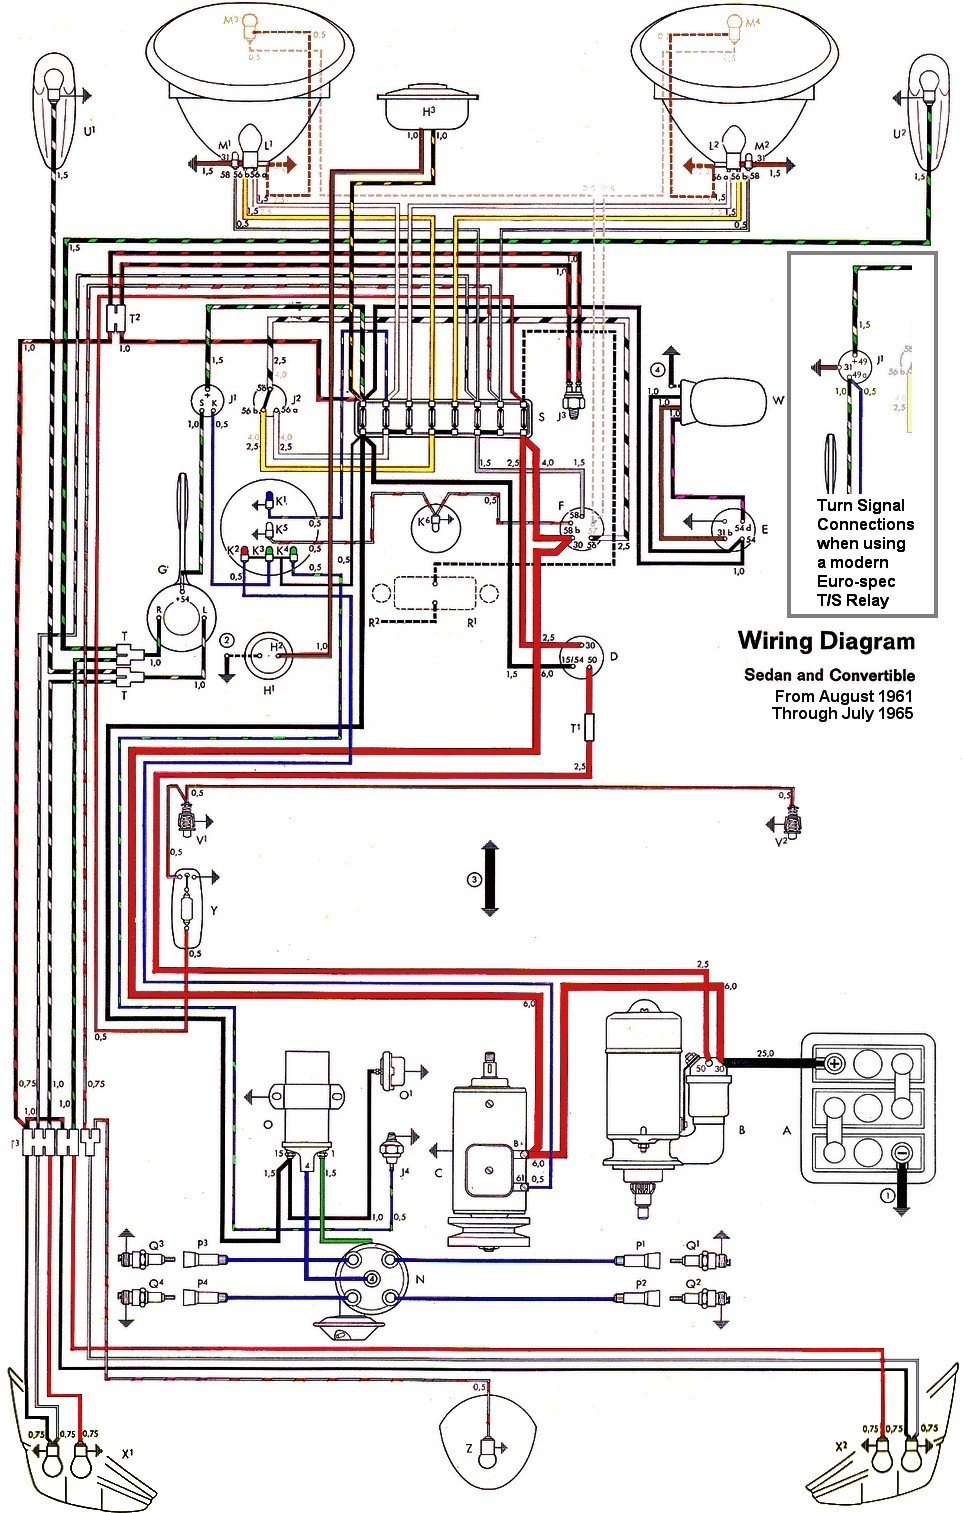 thesamba com type 1 wiring diagrams rh thesamba com 1973 vw thing wiring diagram vw t2 1973 wiring diagram